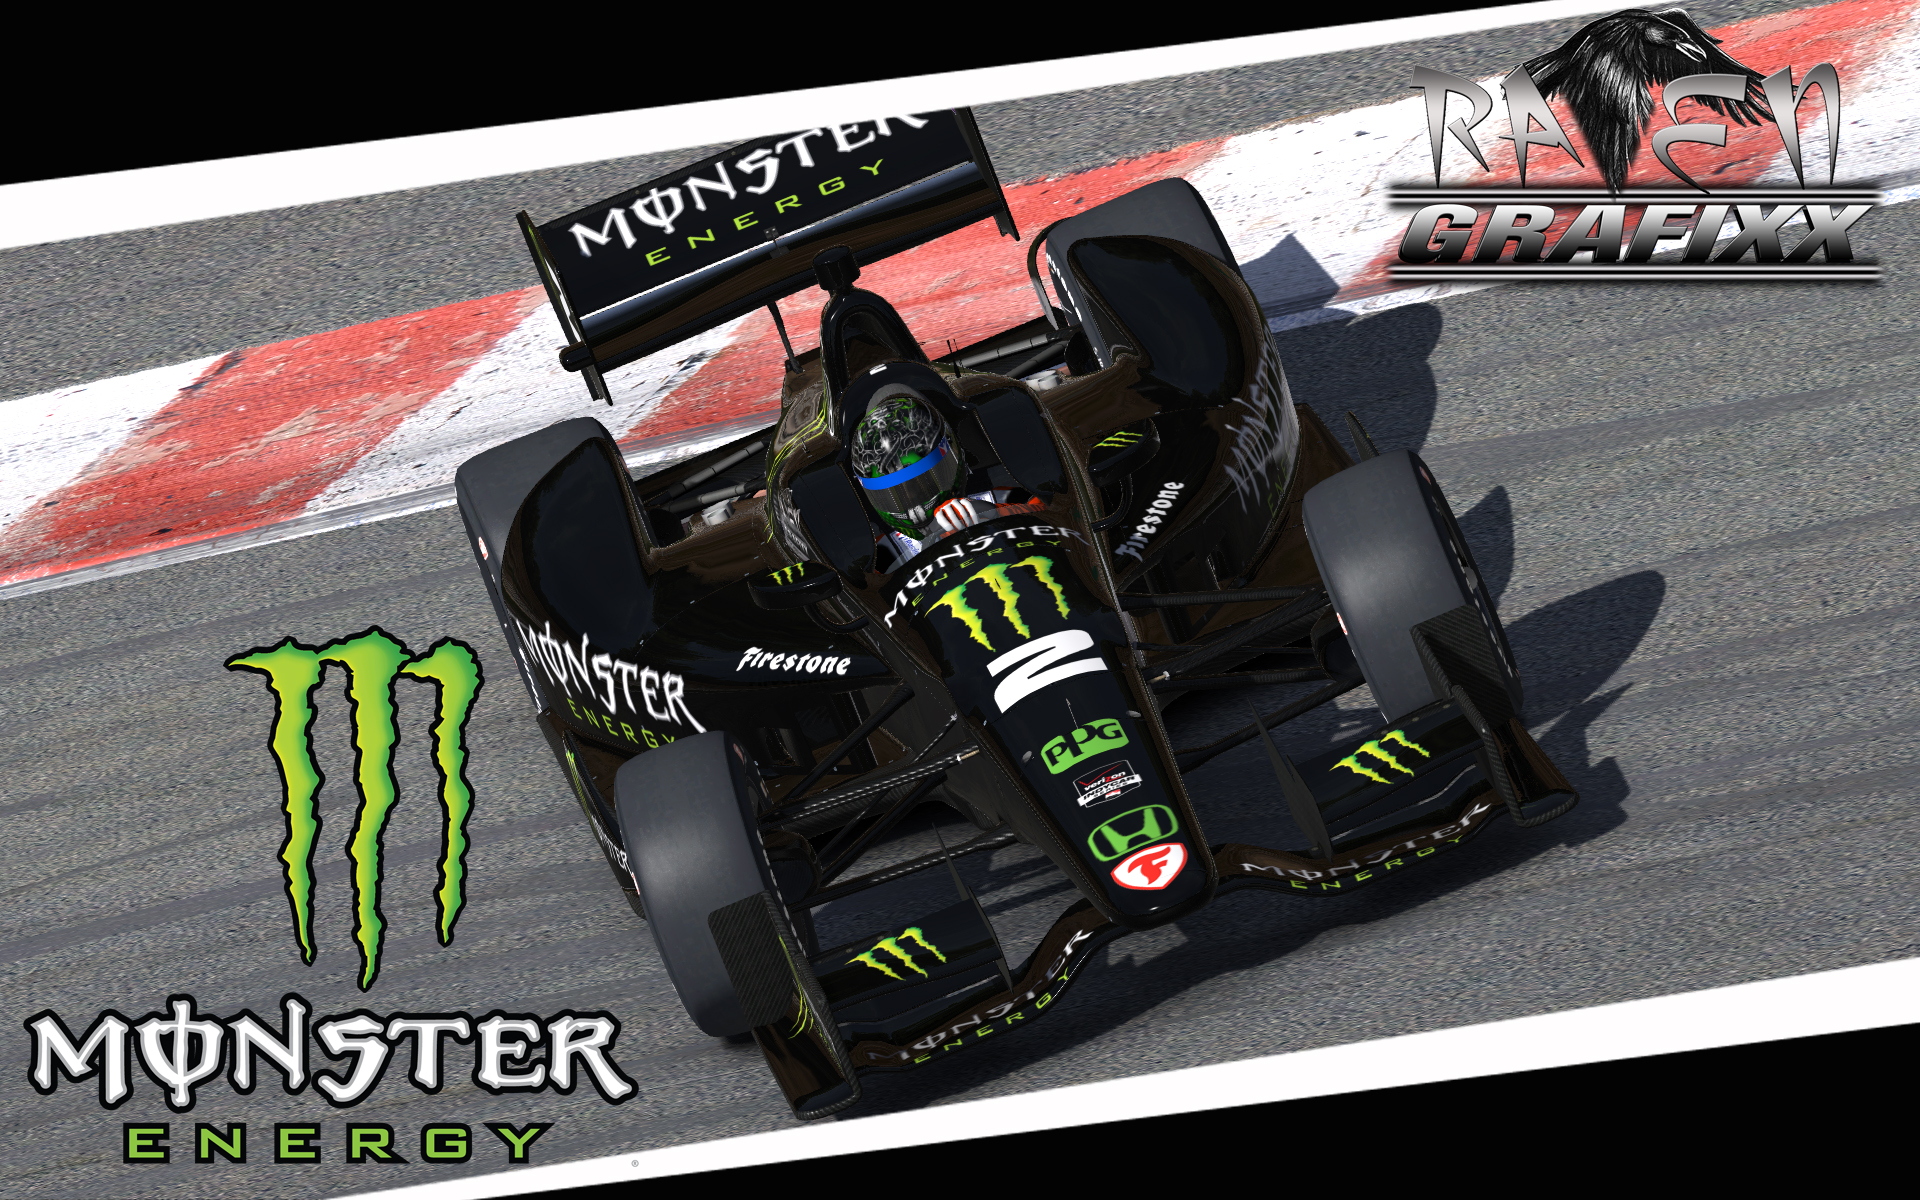 Preview of 2016 Monster Energy Dallara DW12 by Doyle Lowrance